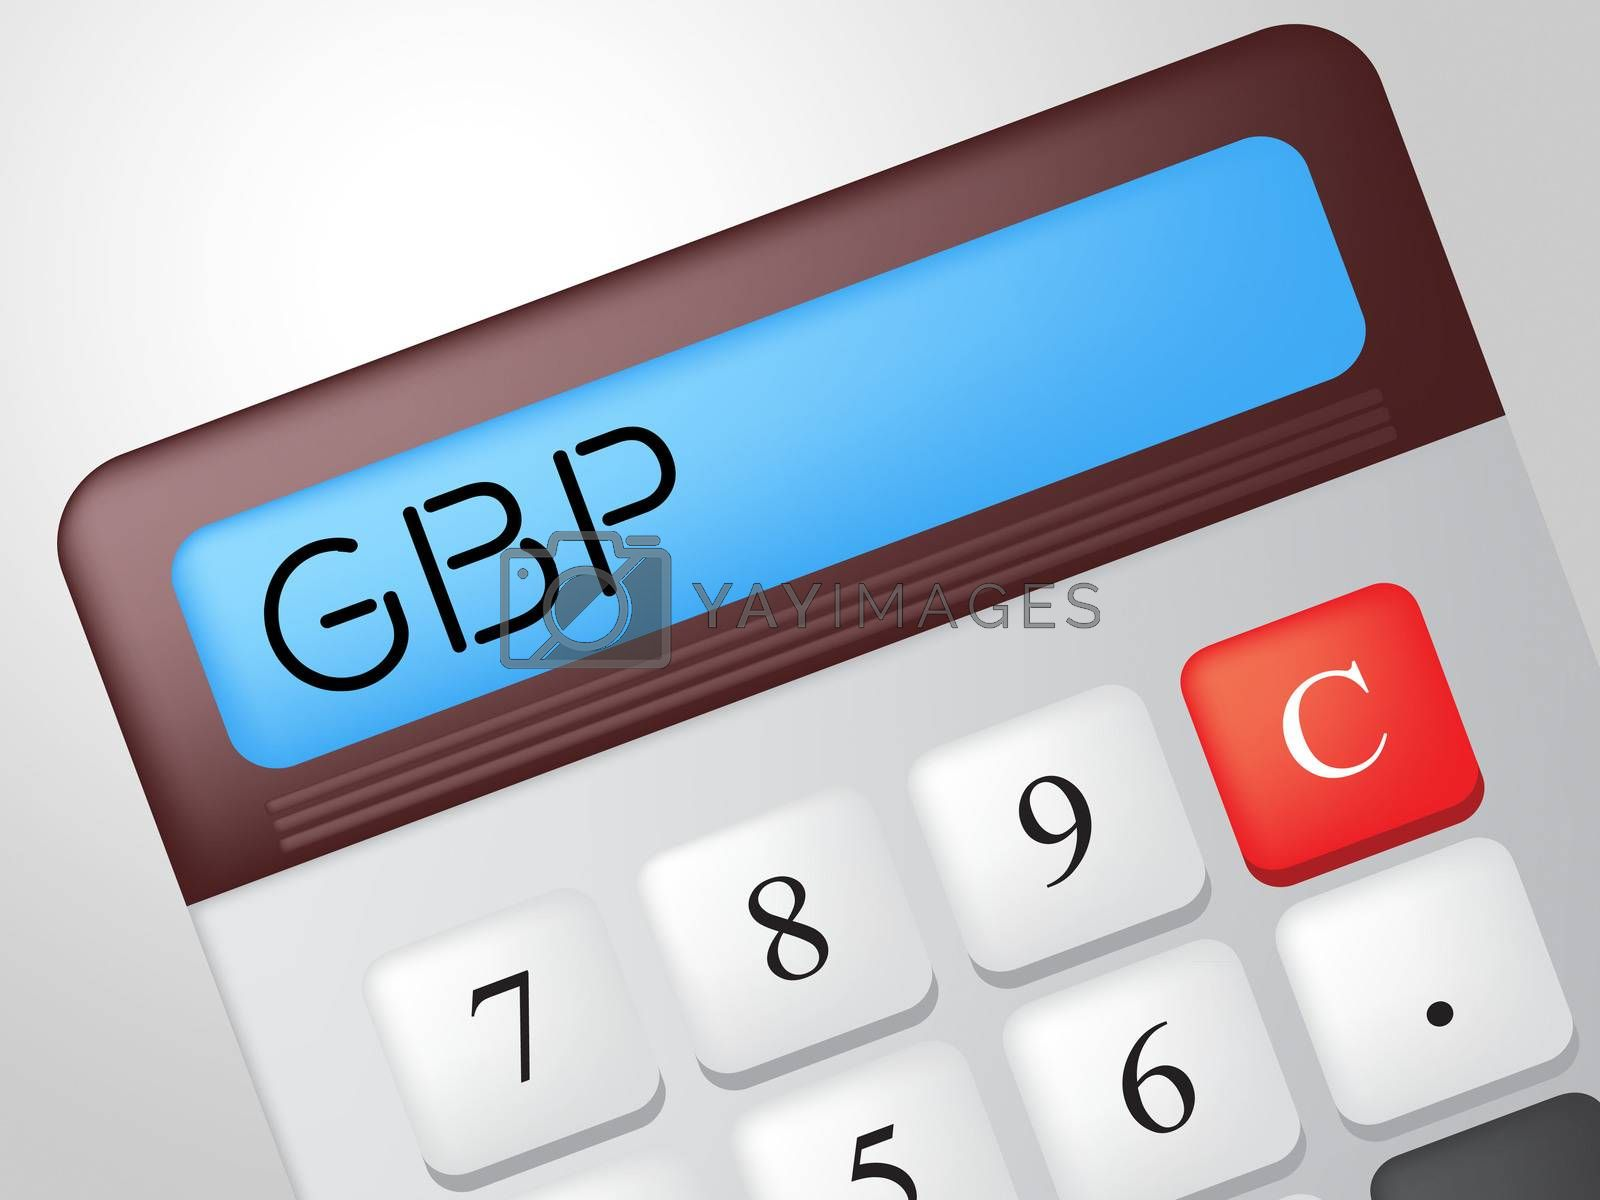 Gbp Calculator Shows British Pound And Calculation by stuartmiles